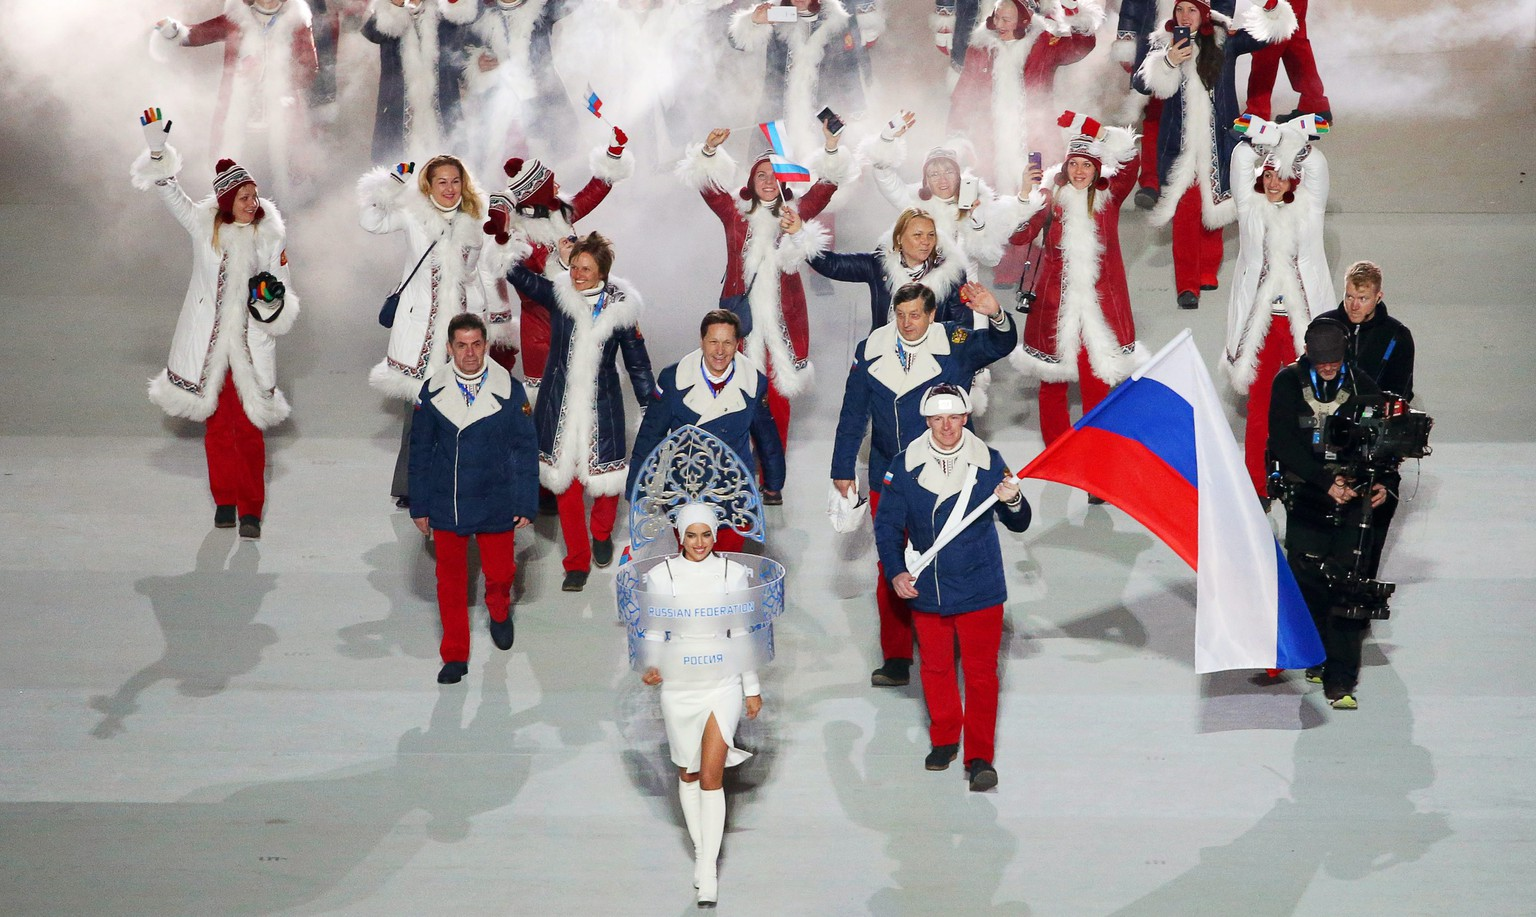 epa05303428 (FILE) A file picture dated 07 February 2014 of Team Russia with flag bearer Alexander Zubkov (R) during the Opening Ceremony of the Sochi 2014 Olympic Games at the Fisht Olympic Stadium in Sochi, Russia. The International Olympic Committee (IOC) on 13 May 2016 called for immediate investigations on allegations of Russian state-sponsored doping at the Sochi 2014 Olympic Games. Grigory Rodchenkov, former head of Russia's anti-doping laboratory, admitted that banned performance-enhancing substances have been supplied and urine samples have been exchanged before and during the Sochi 2014 Olympics, the New York Times reported on 12 May 2016.  EPA/BARBARA WALTON *** Local Caption *** 51215598